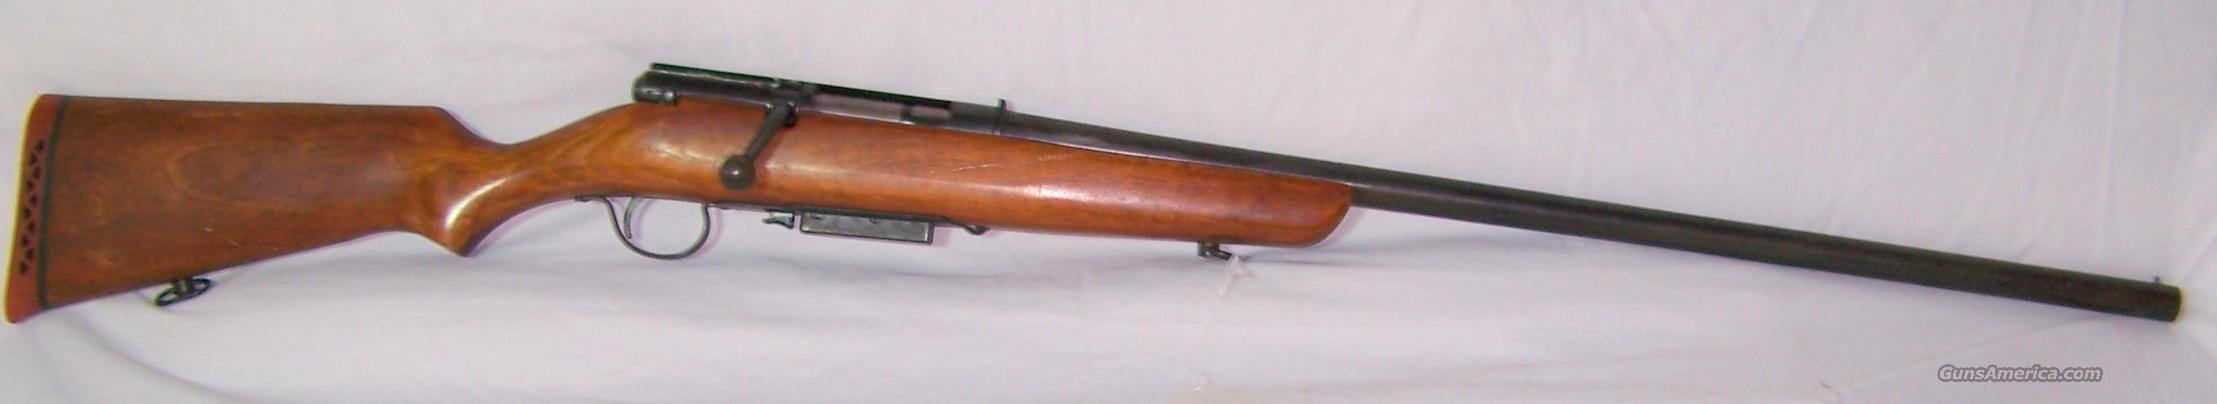 Marlin Mod 55 12 Gauge  Guns > Shotguns > Marlin Shotguns